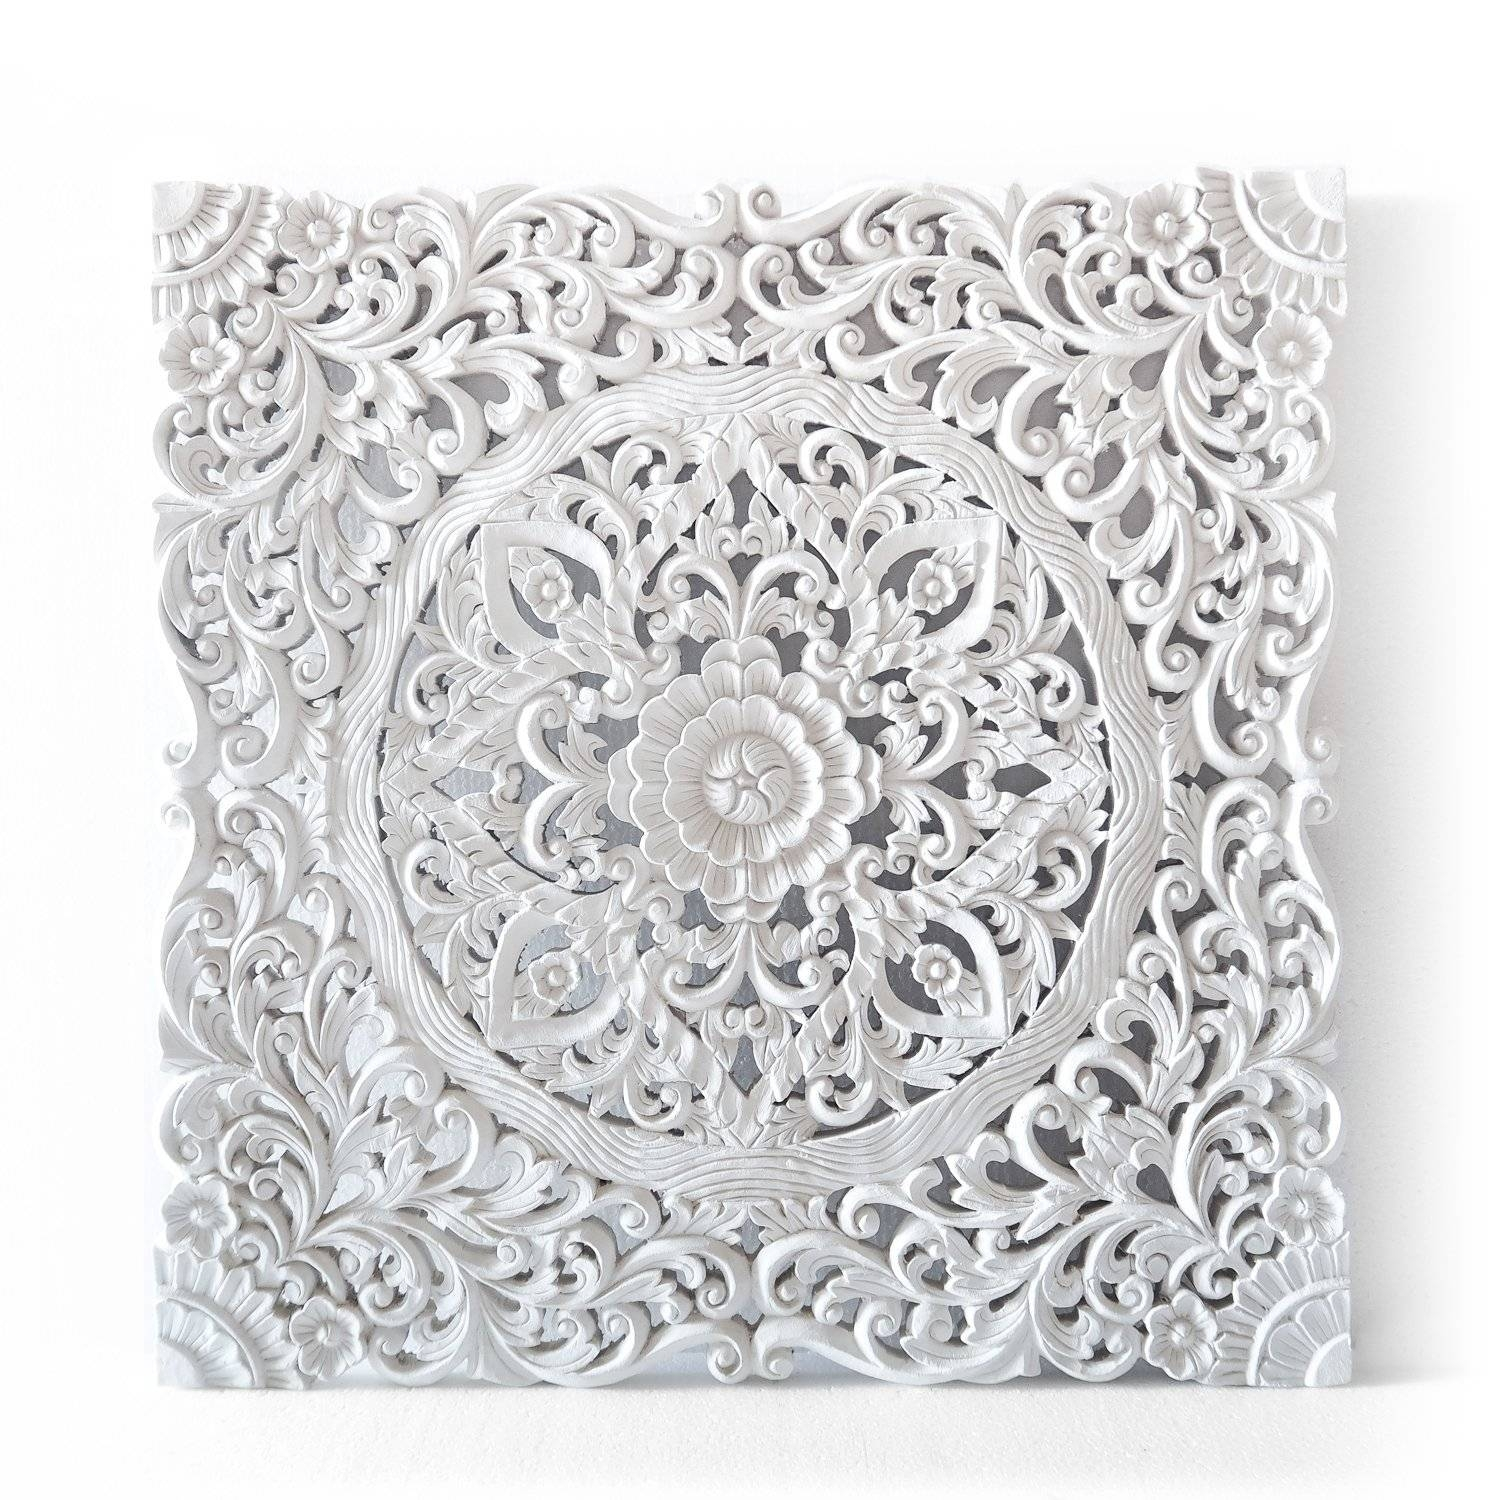 Balinese Authentic Wall Hanging Panel – Siam Sawadee Inside 2018 White Wooden Wall Art (View 1 of 20)